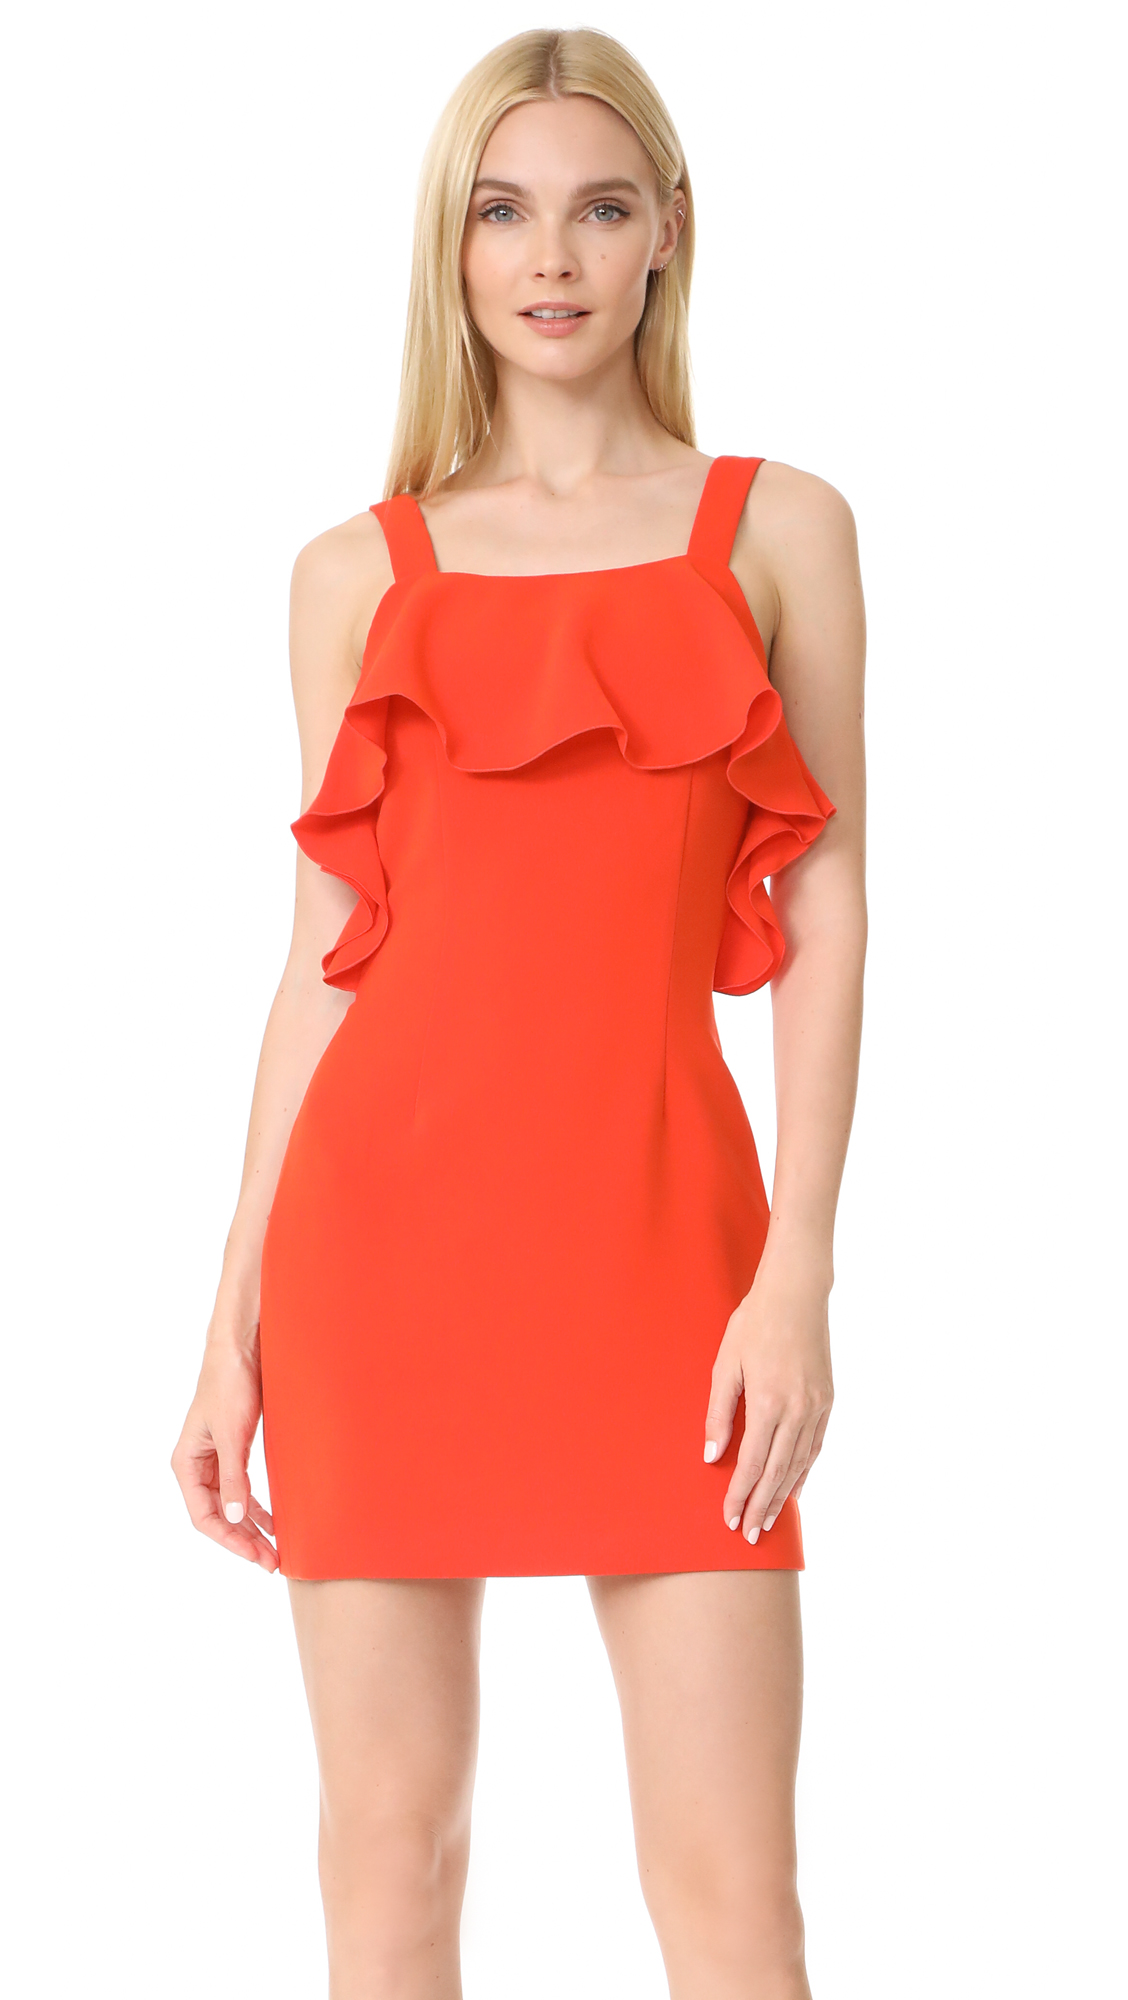 Rachel Zoe Weyford Dress - Dark Coral